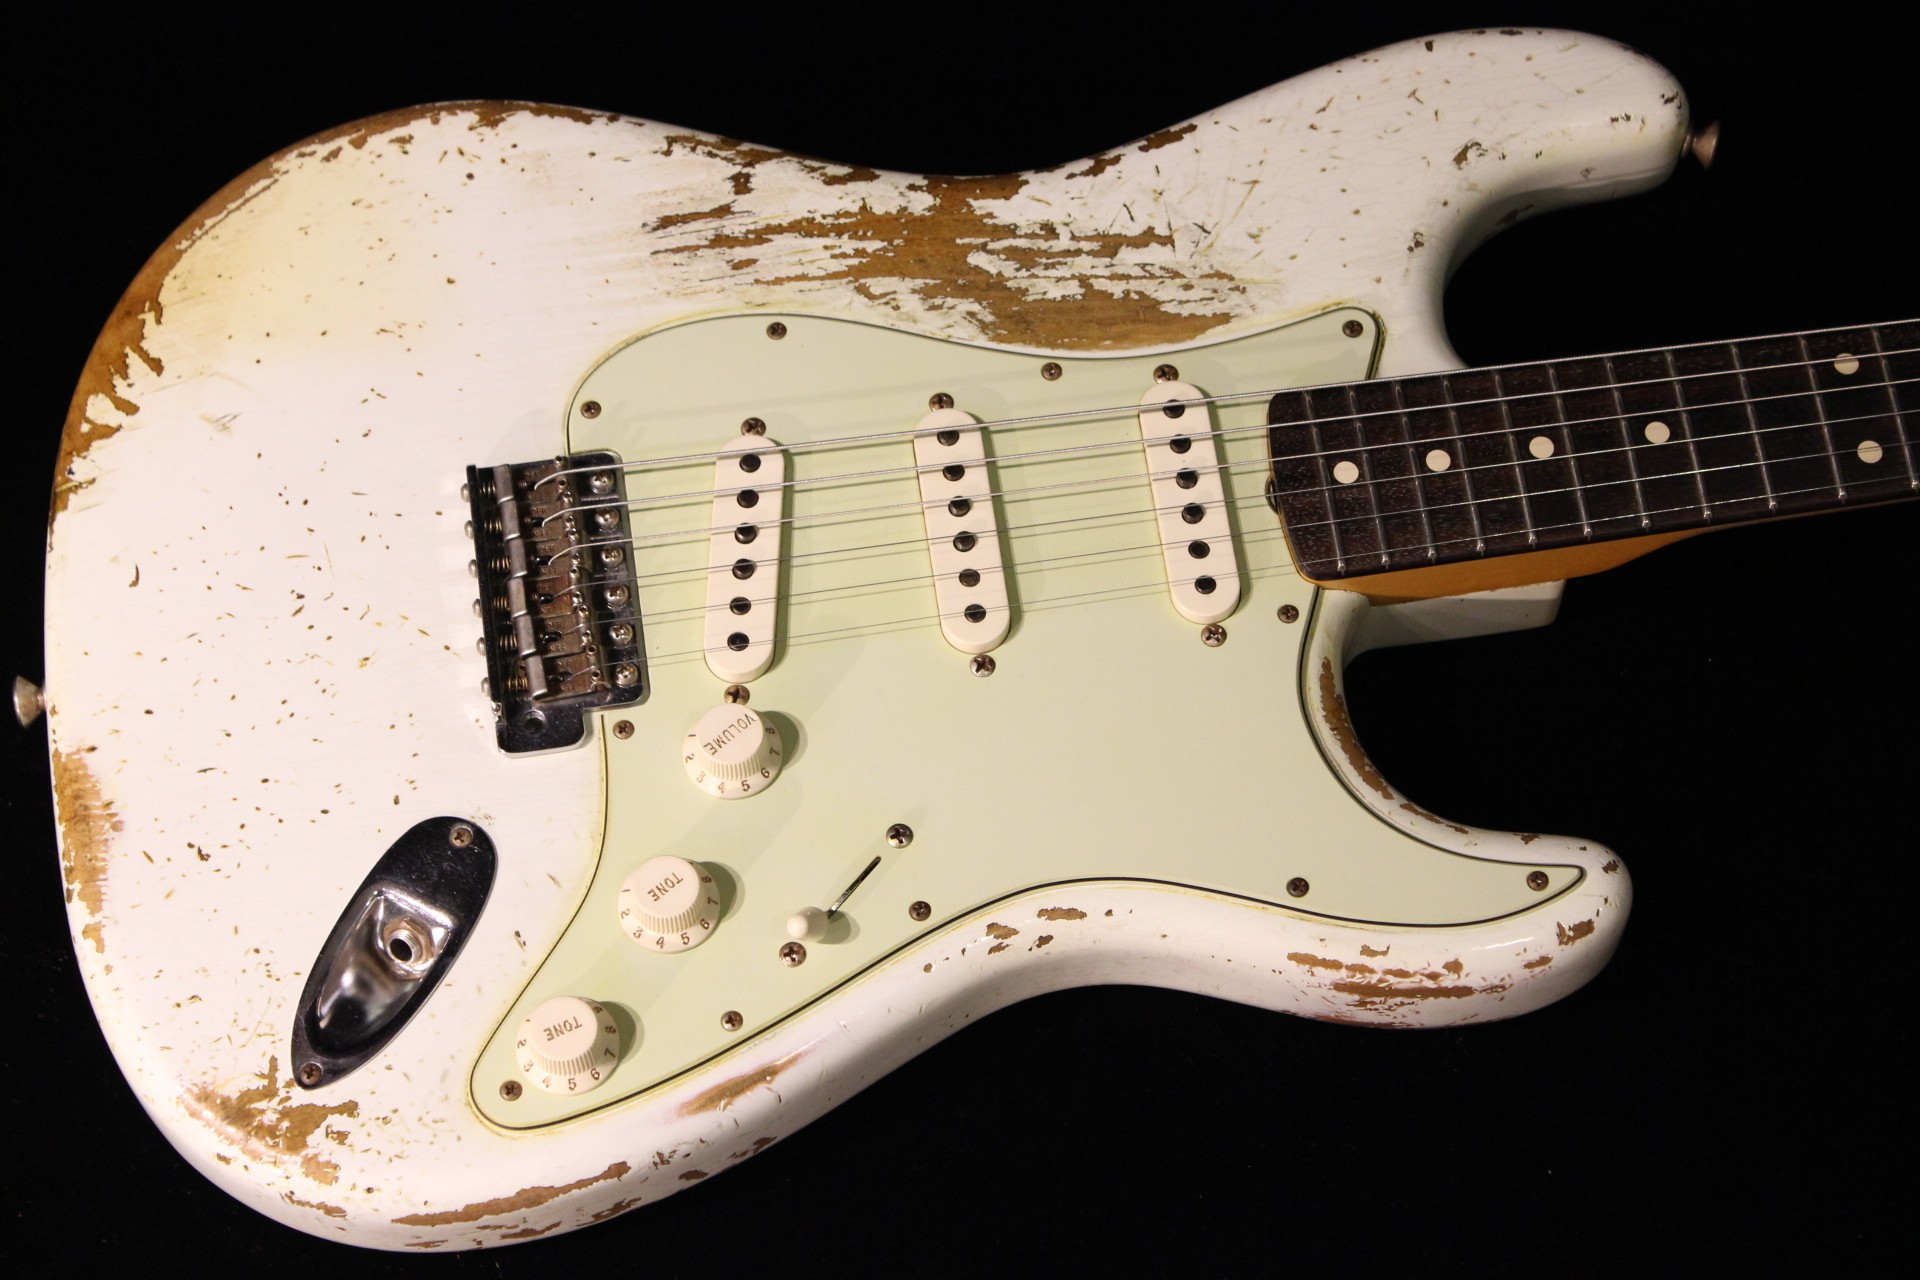 Agregale Un Killswitch A Tu Guitarra Electrica further Fender Custom 1960 Stratocaster Heavy Relic Ow P 427 besides Stratocaster Auto Split Mod further Dimarzio Humbucker Wiring Diagram also 558 Wiring Library 37. on gibson explorer wiring diagram